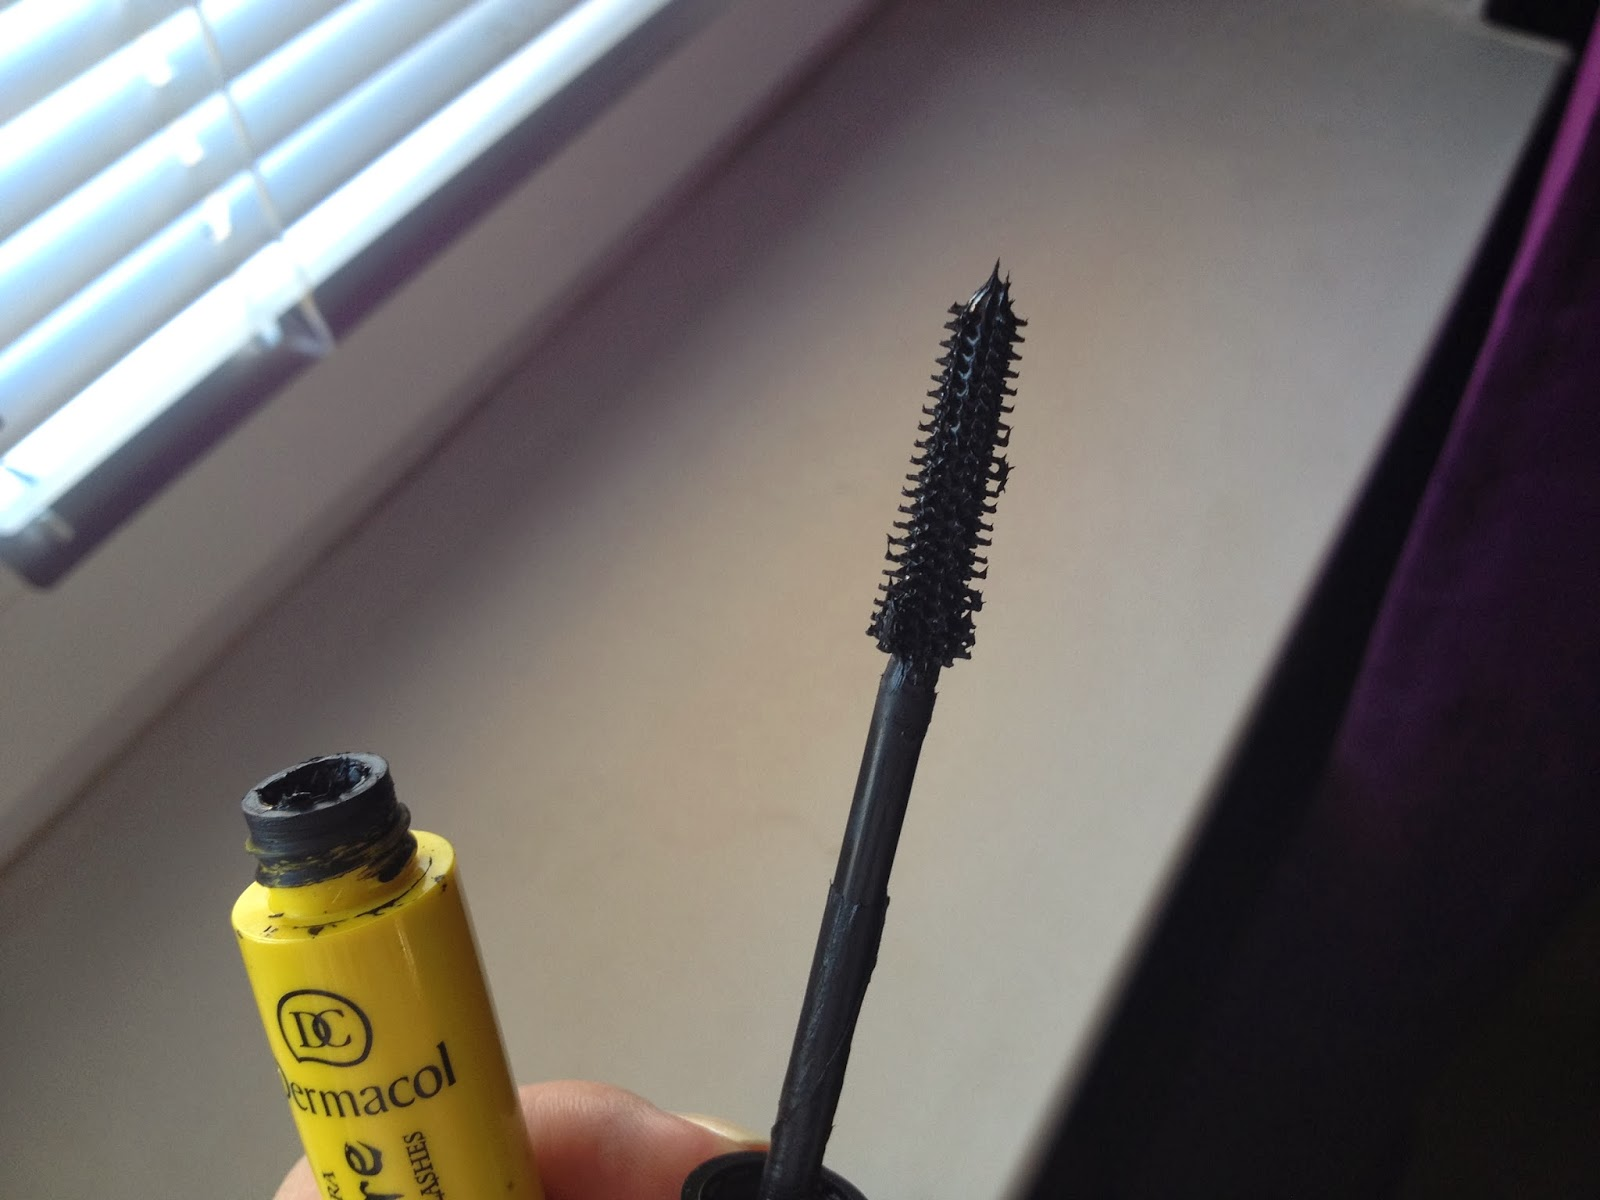 mascara Dermacol Make Up Vampire mega long lashes mascara